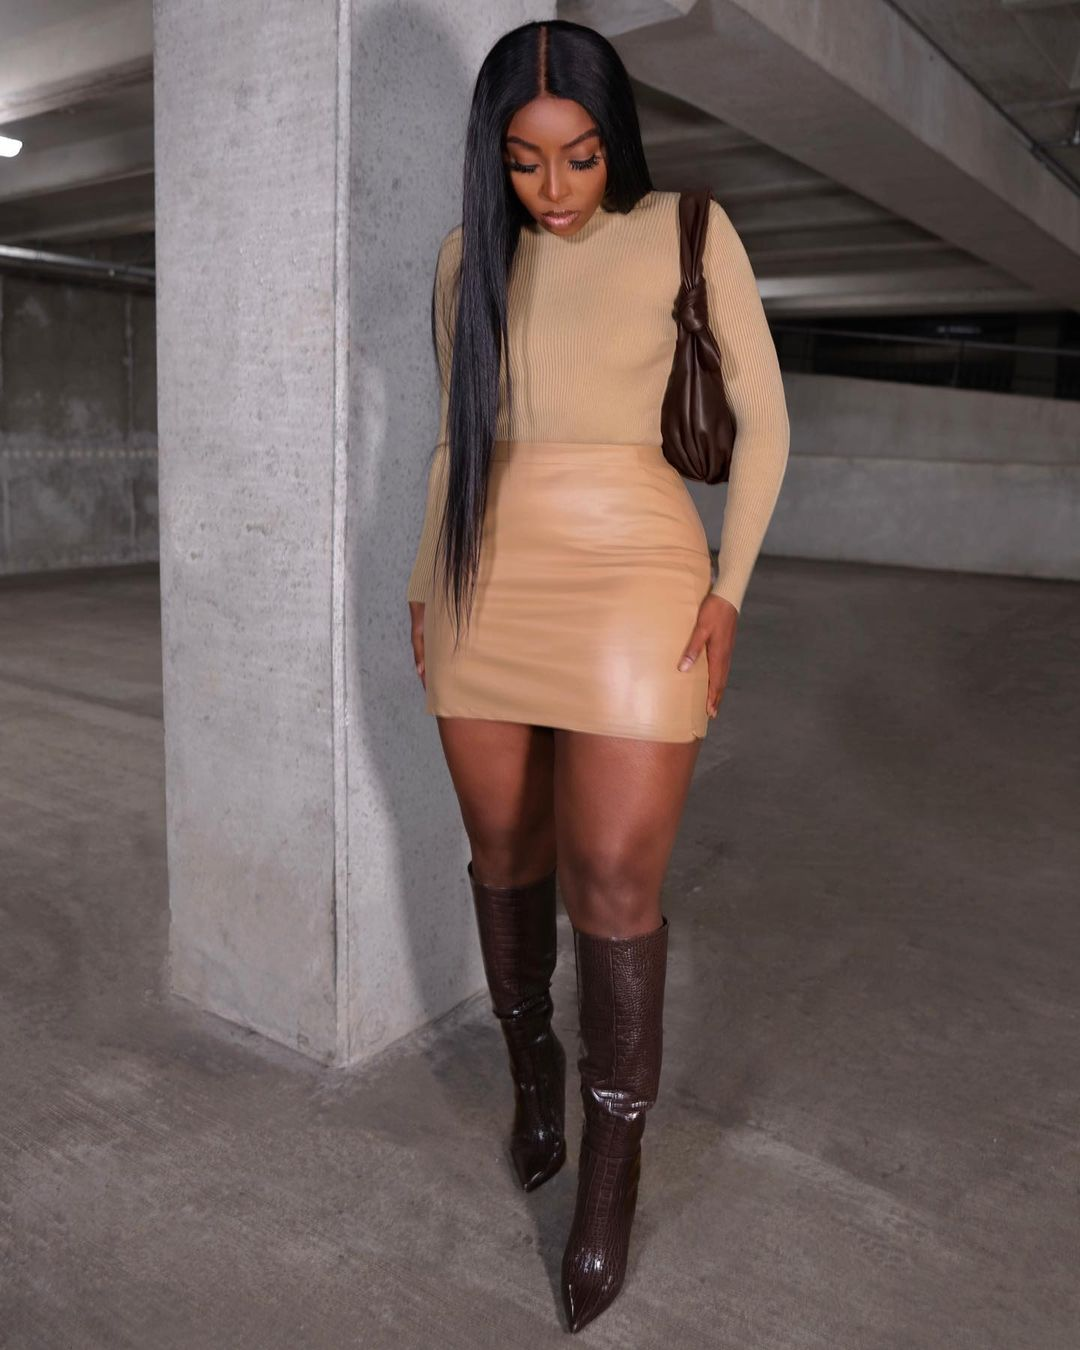 Tia Maria Nelson Radiant Look Makes A Fashion Statement